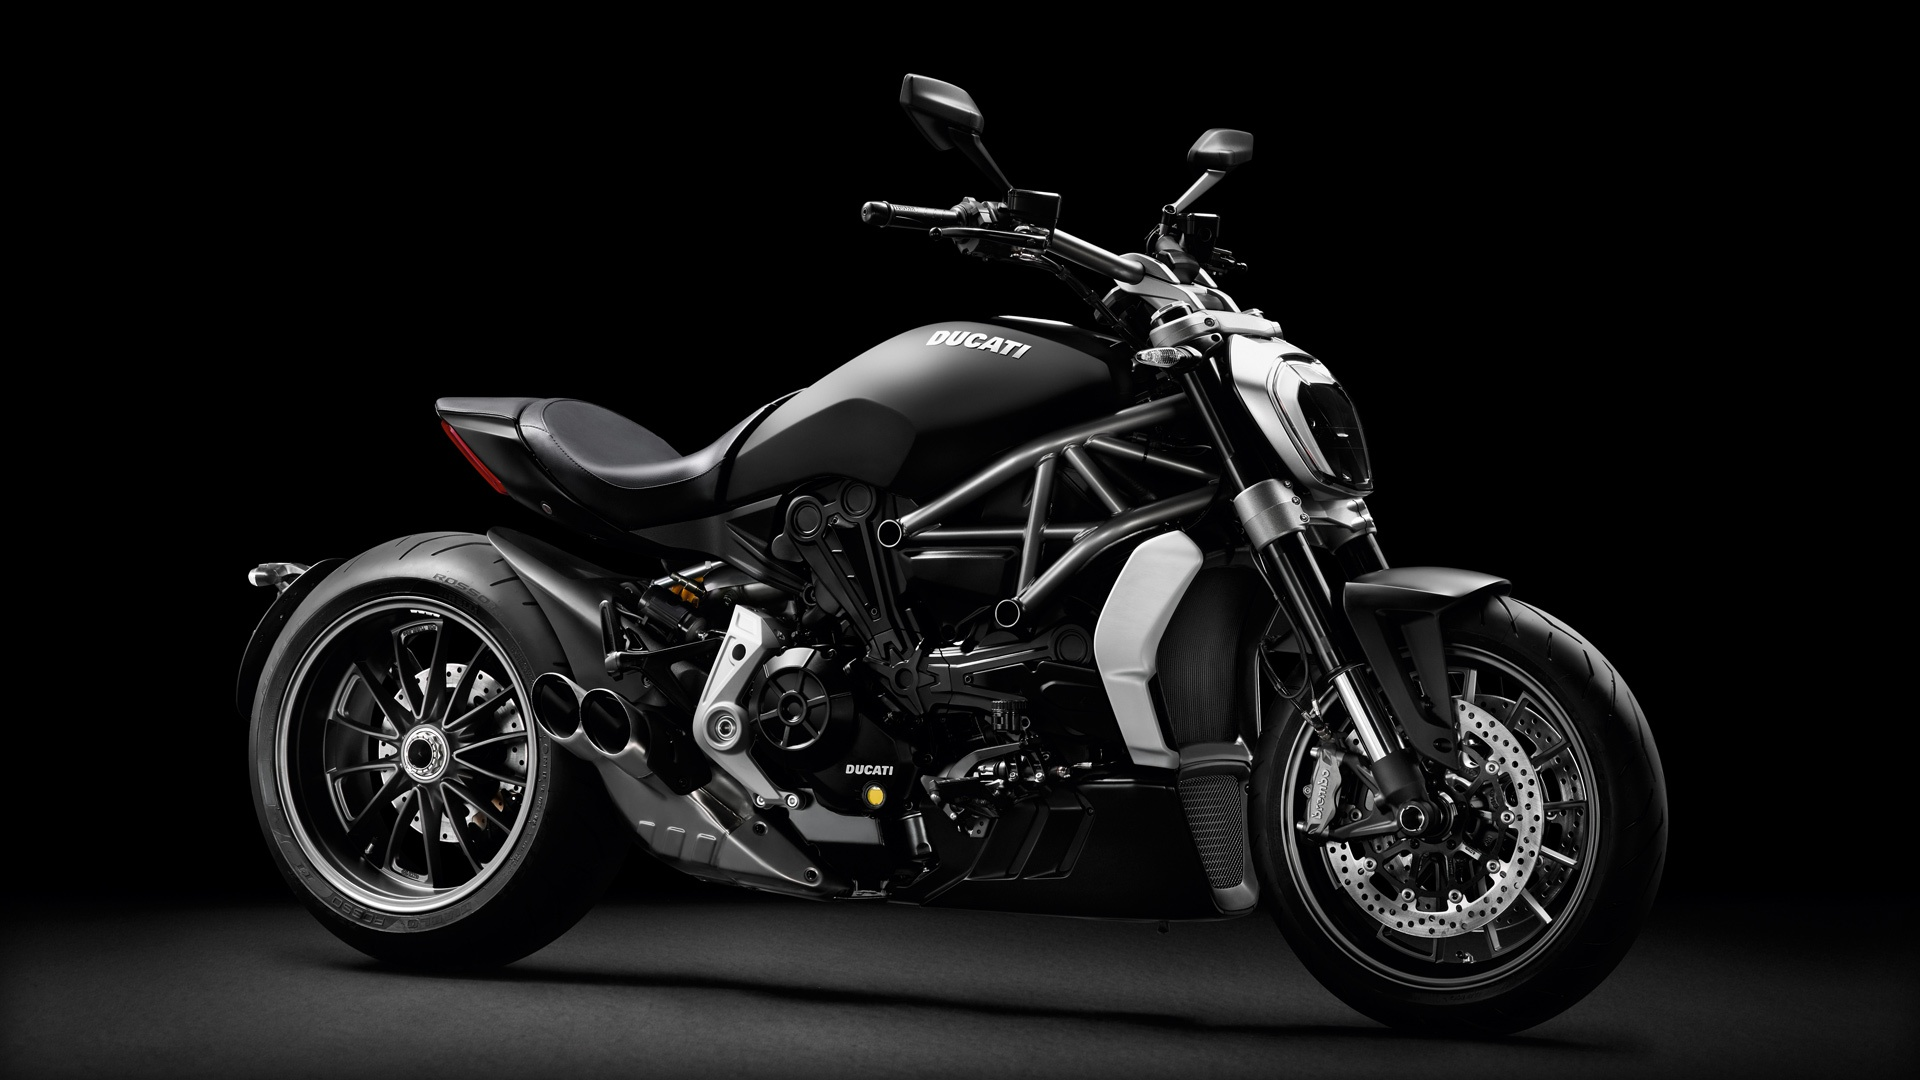 2017 Ducati XDiavel for sale at Ducati Preston, Lancashire, Scotland